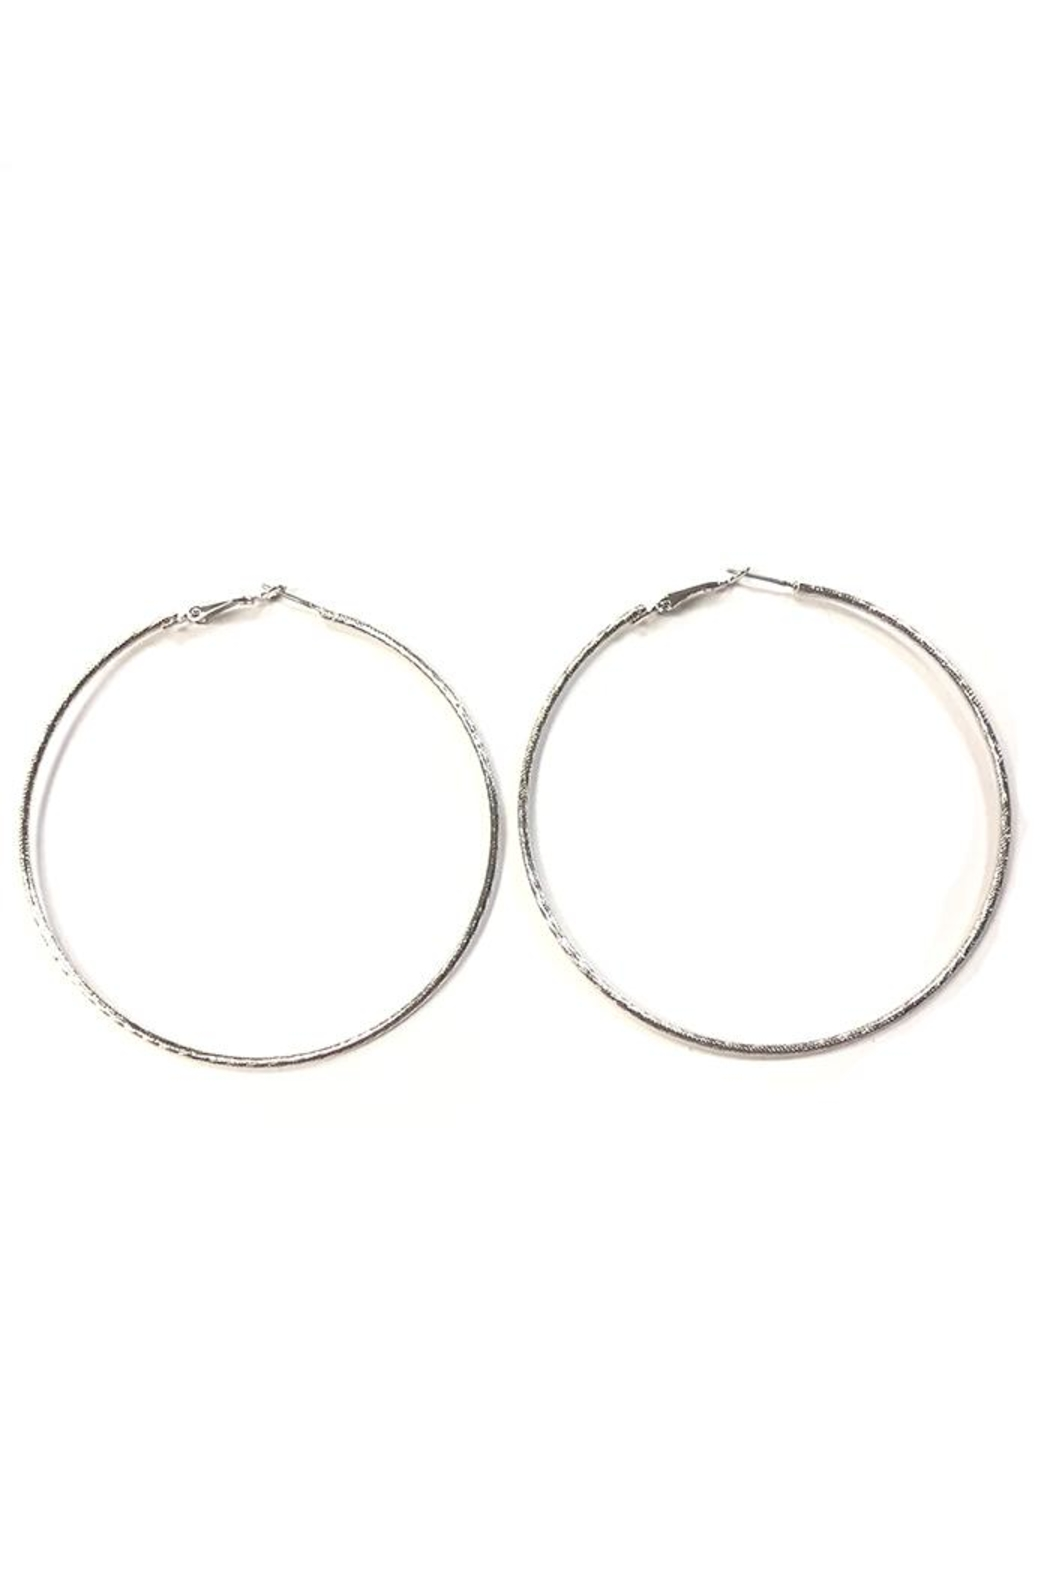 Wona Trading Large White-Gold Hoops - Front Cropped Image